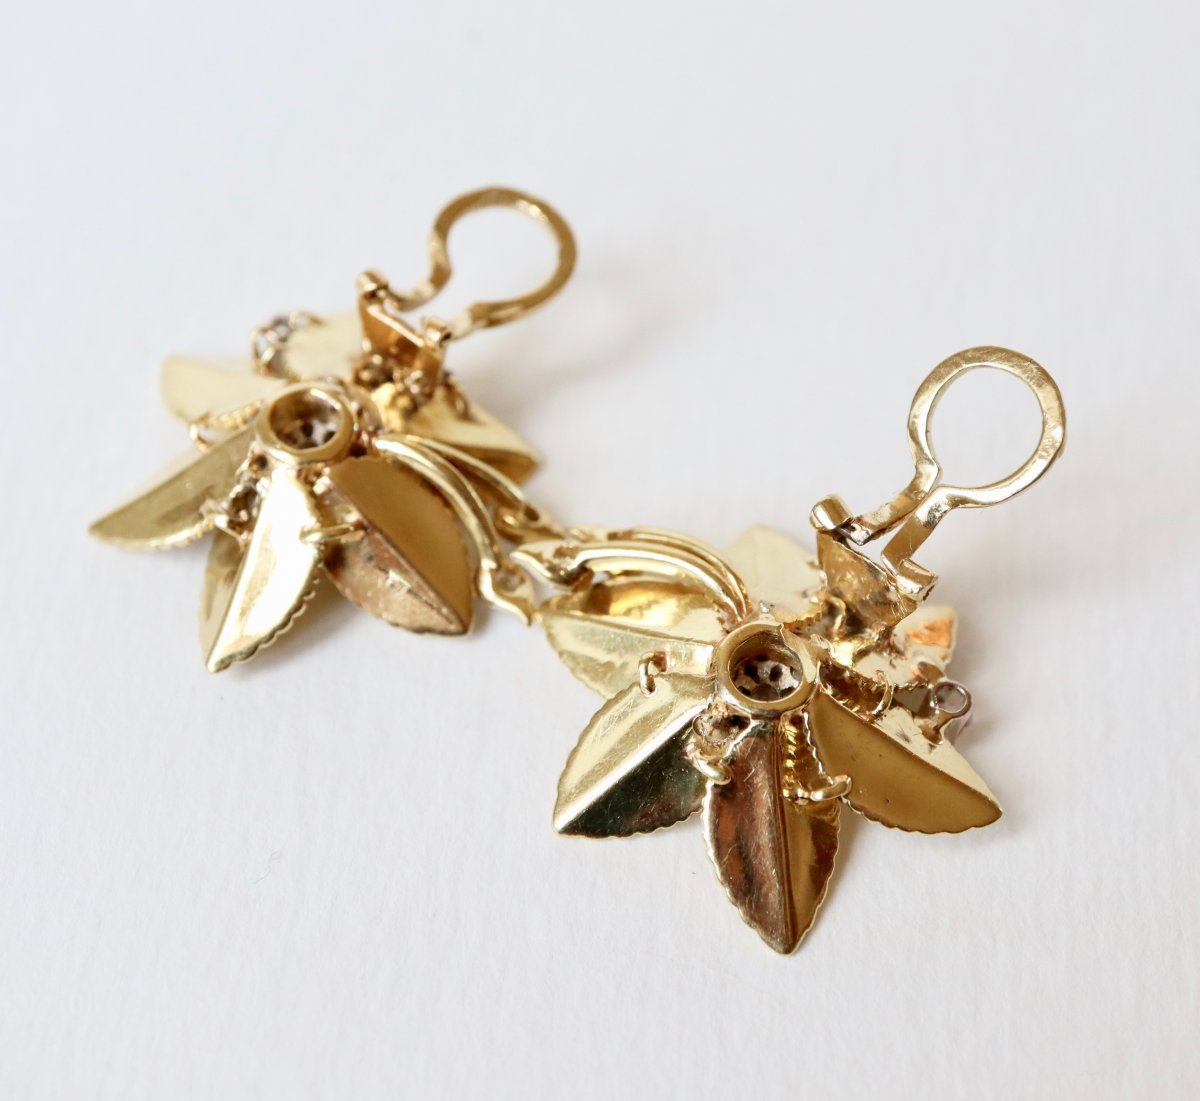 Flower Clip Earrings In 18 Kt Yellow Gold And Diamonds-photo-3